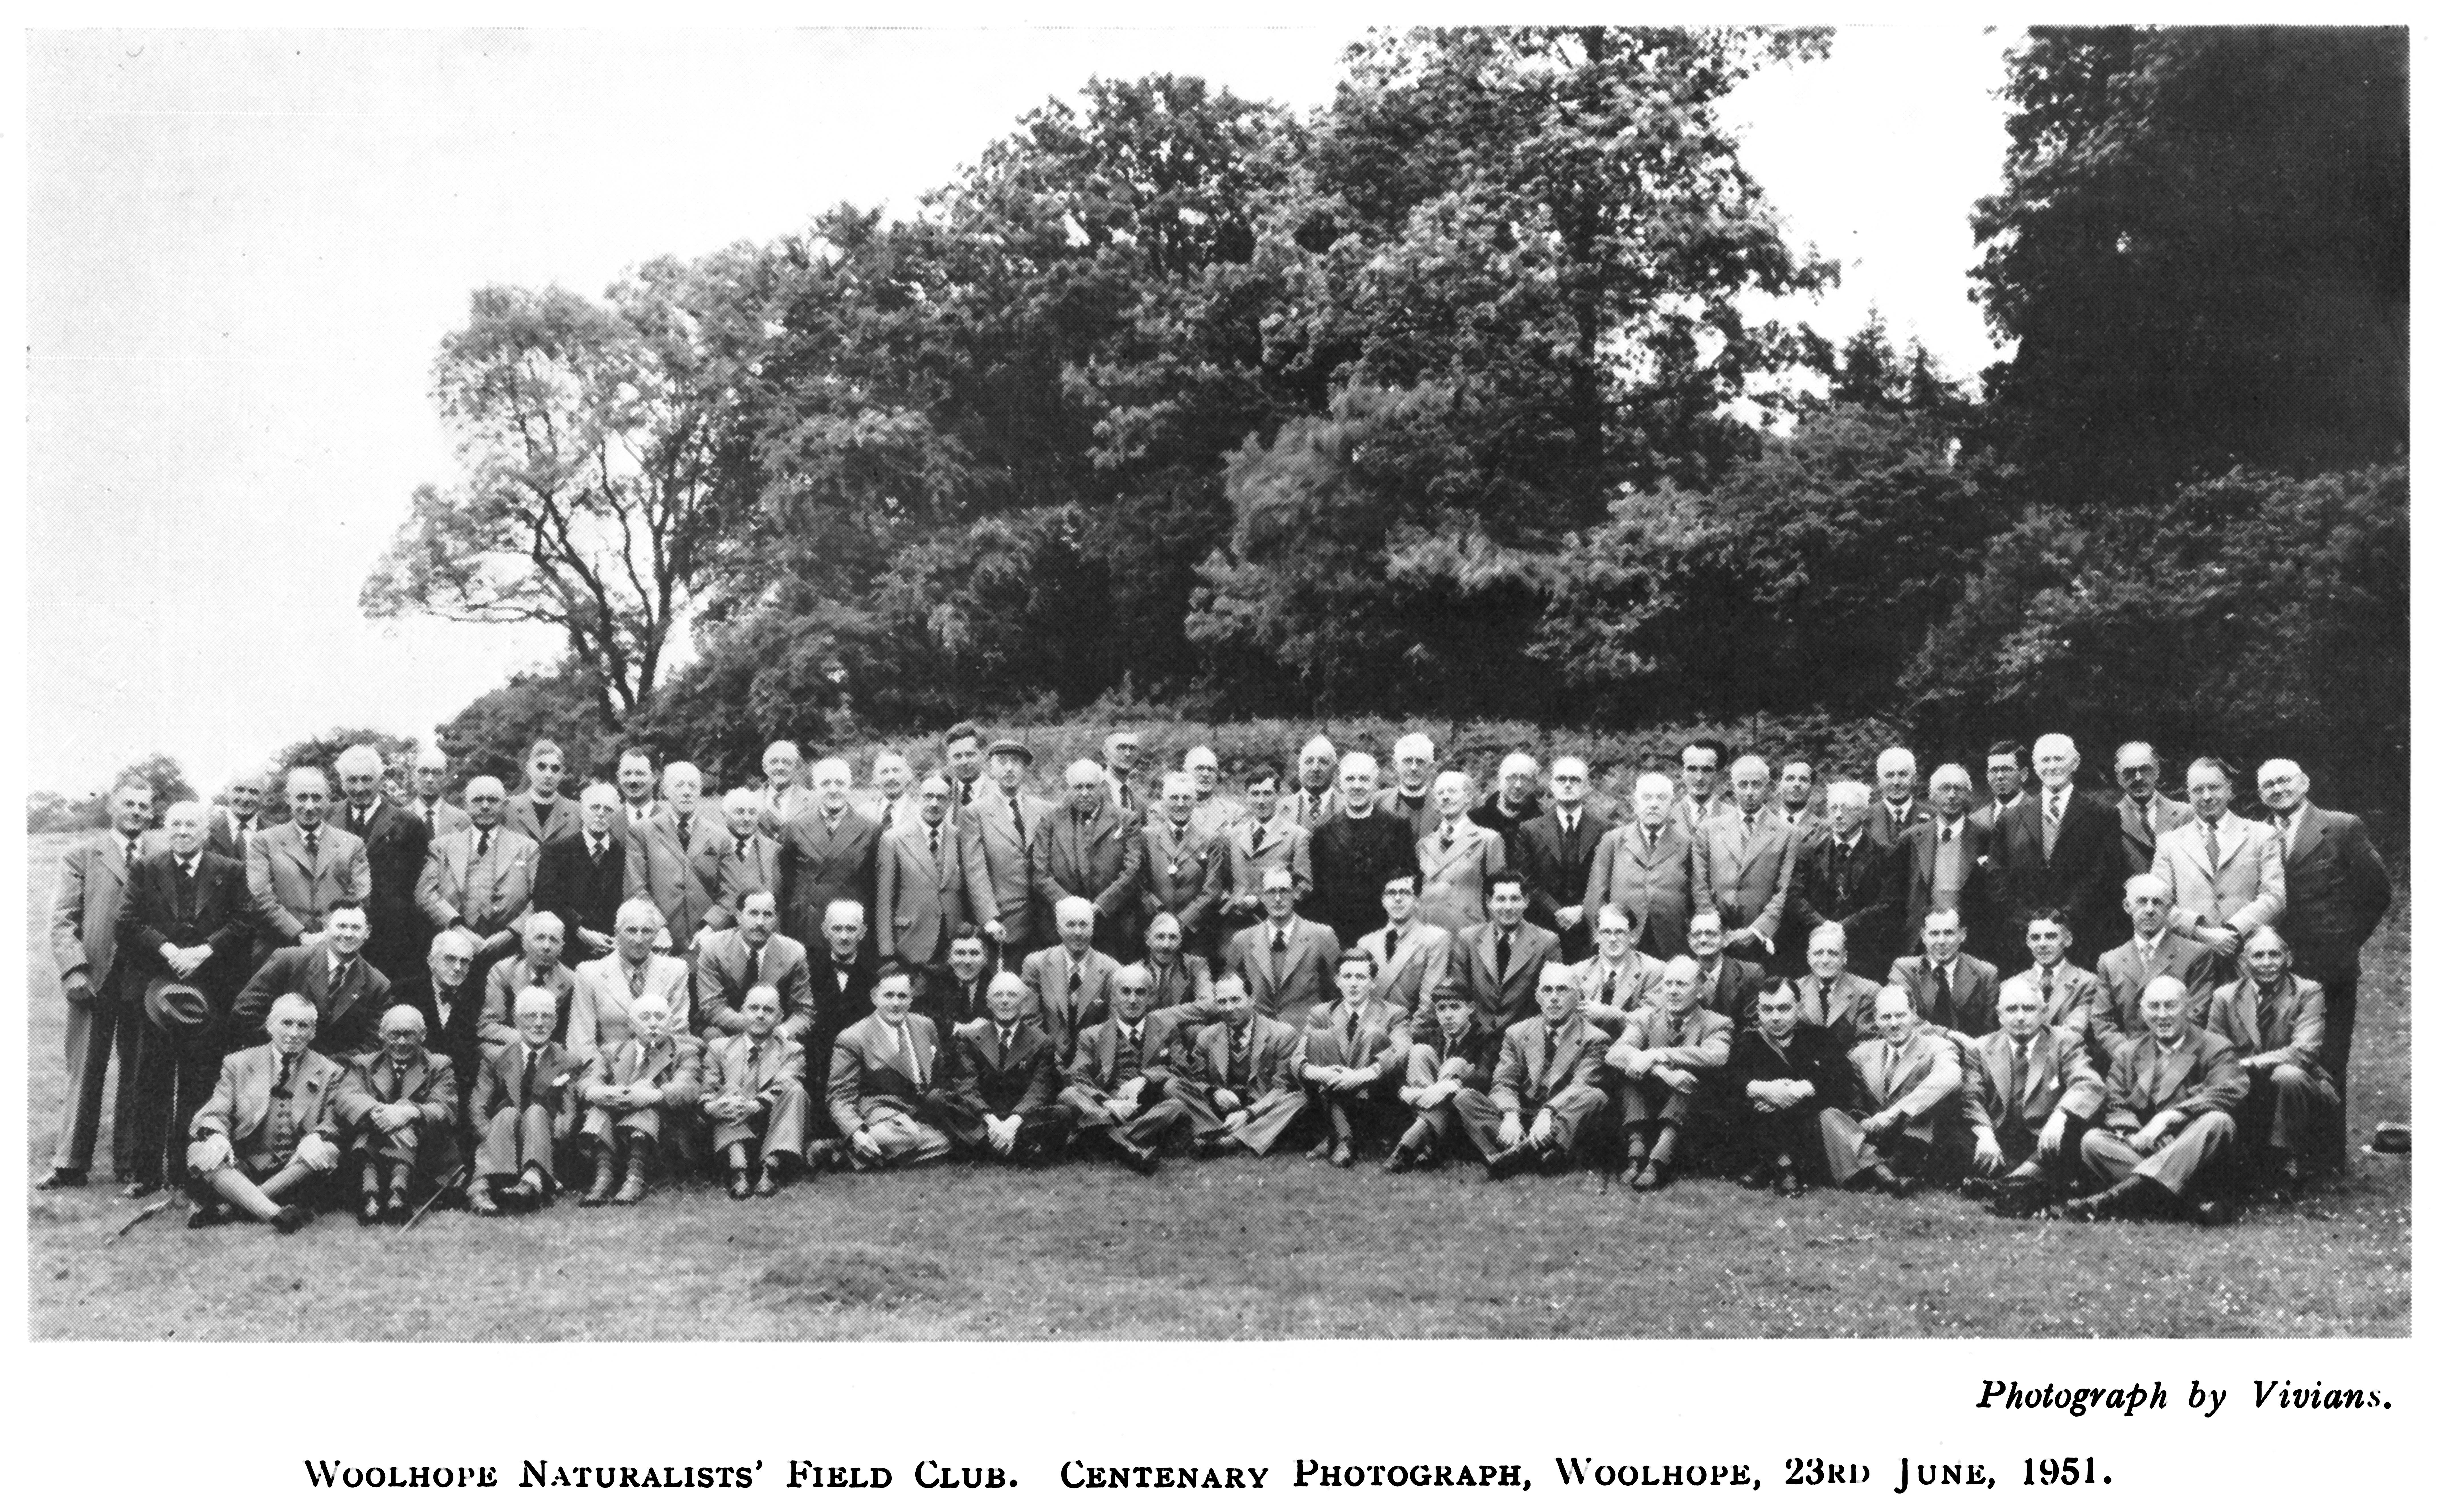 Woolhope Club centenary photograph